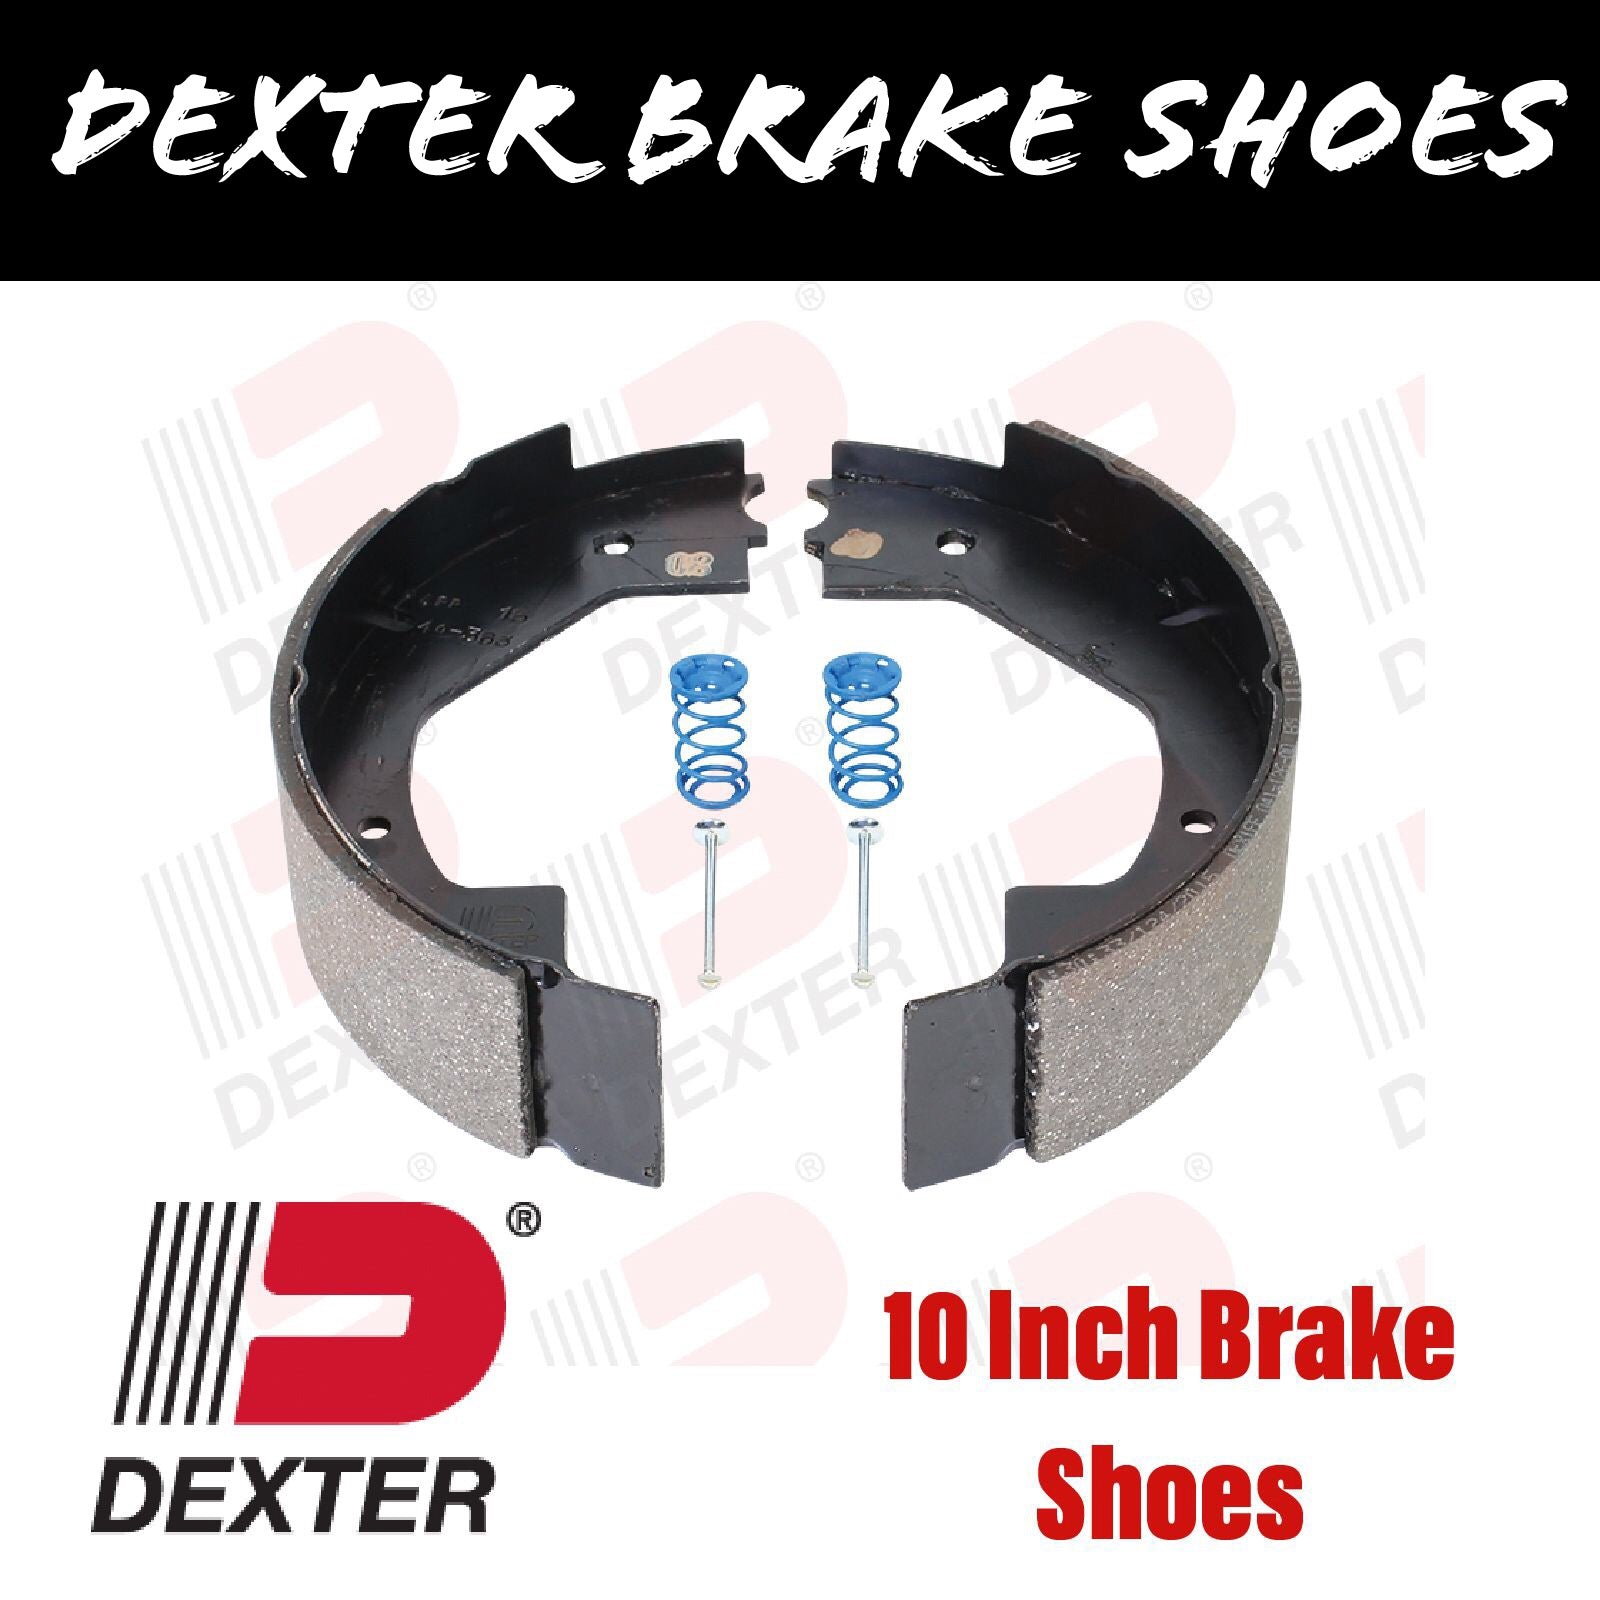 DEXTER 10 INCH BRAKE SHOES